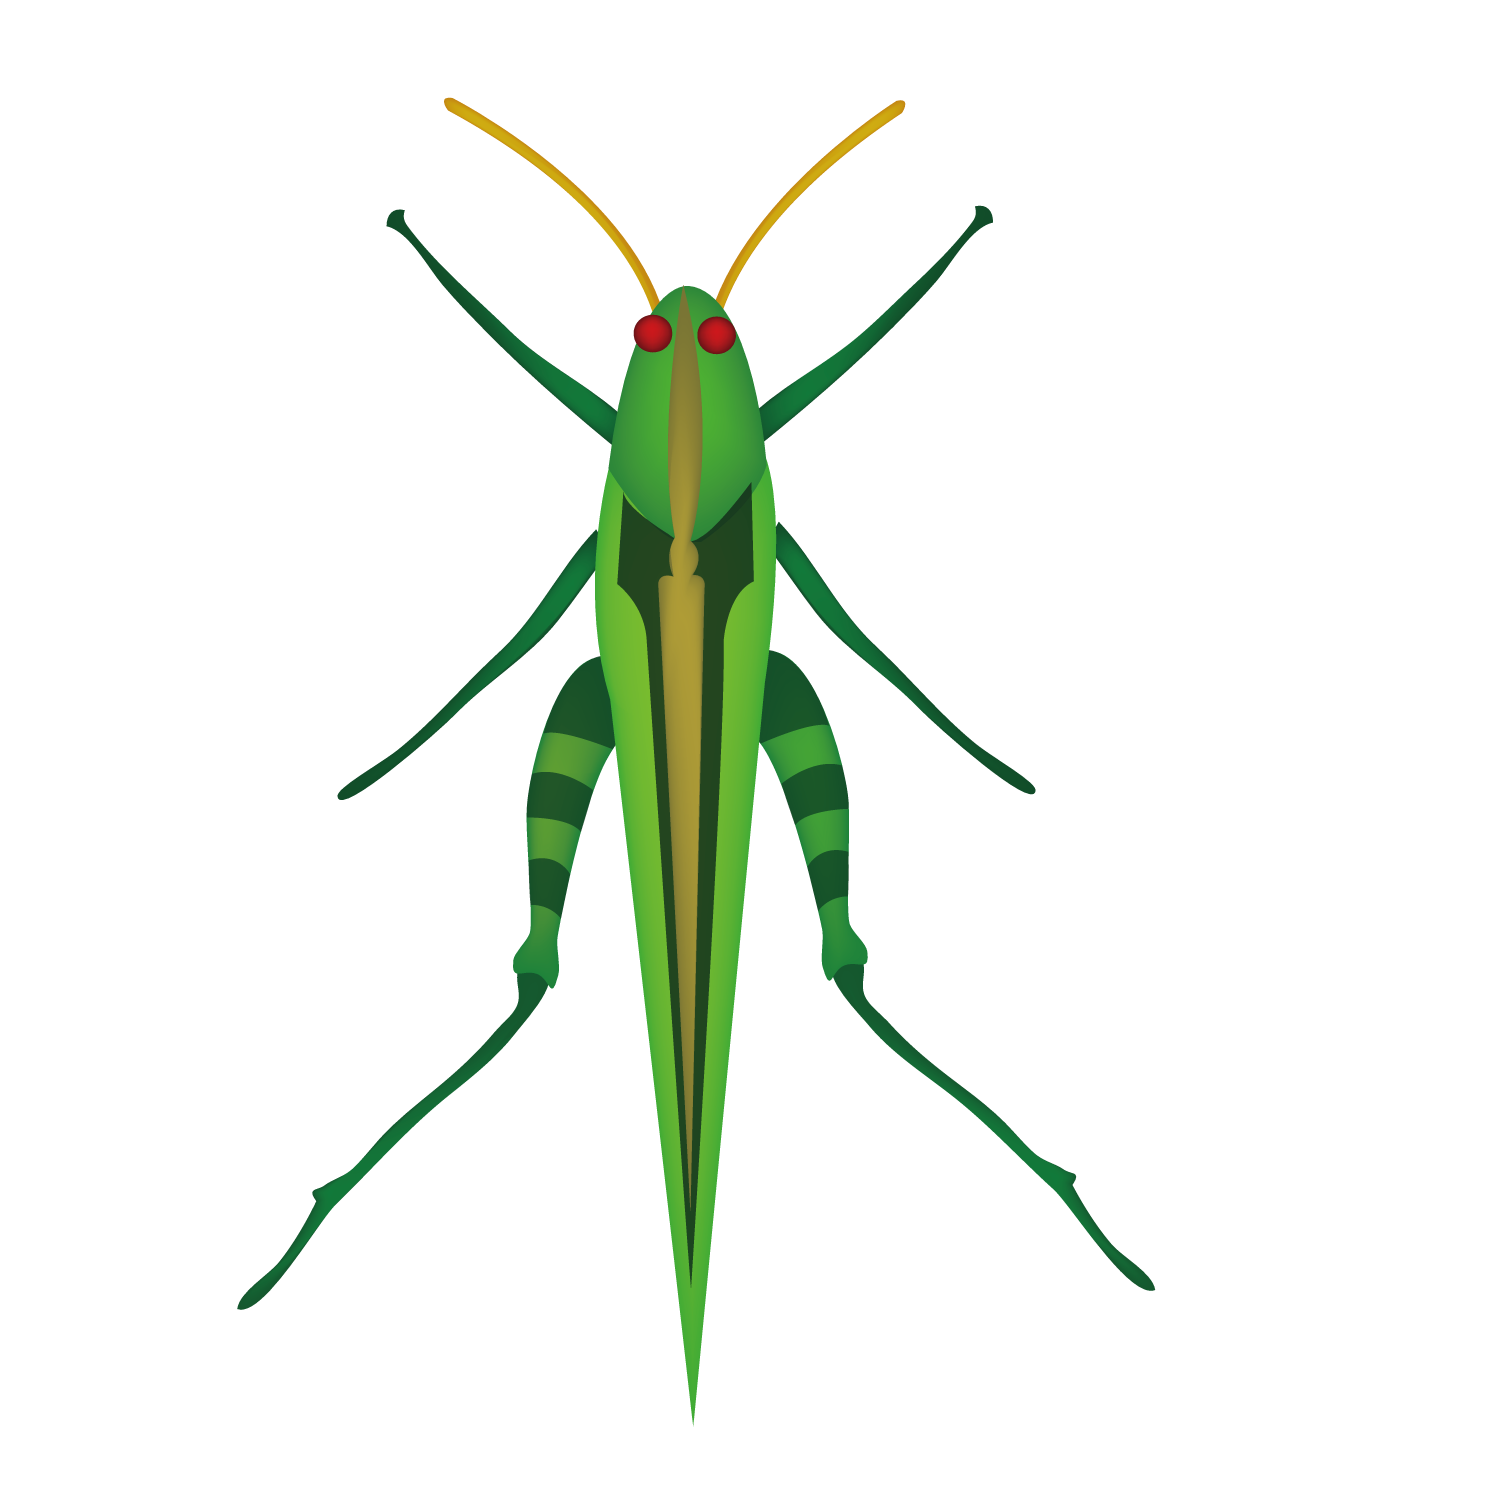 Insect clipart insect grasshopper. Mosquito locust clip art